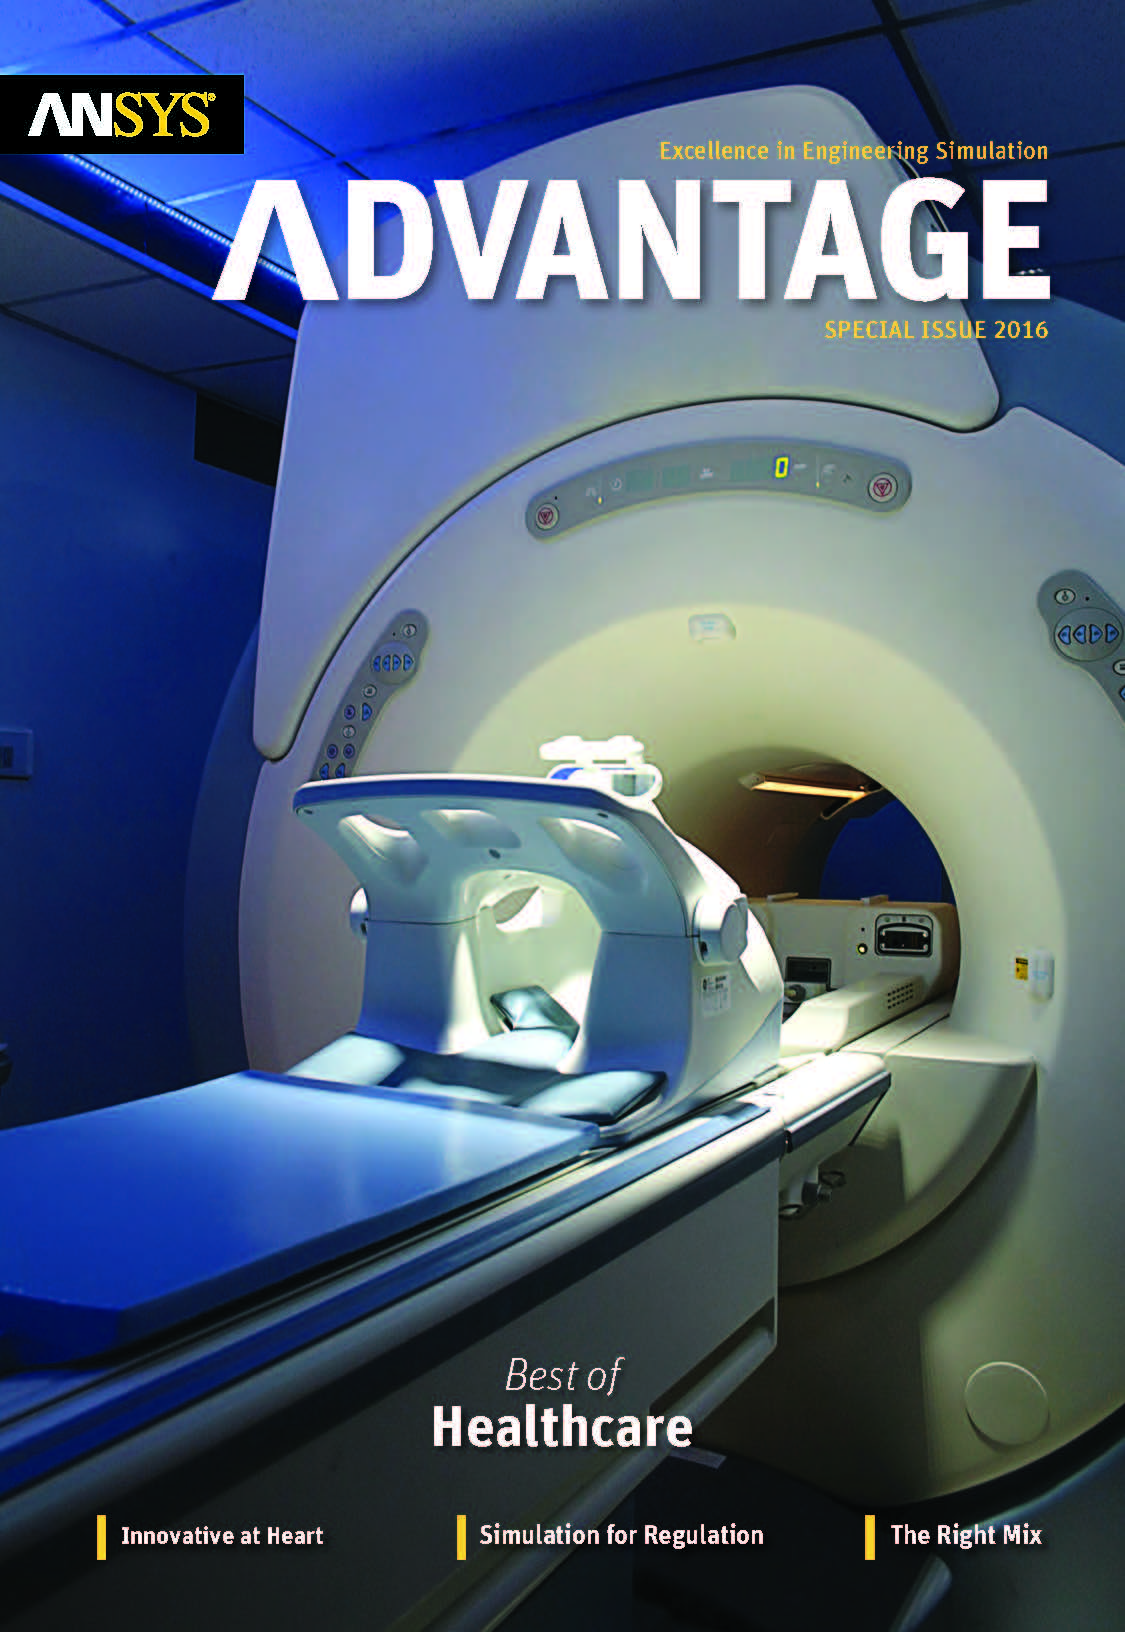 ANSYS Advantage Best of Healthcare. Special ISSUE 2016.